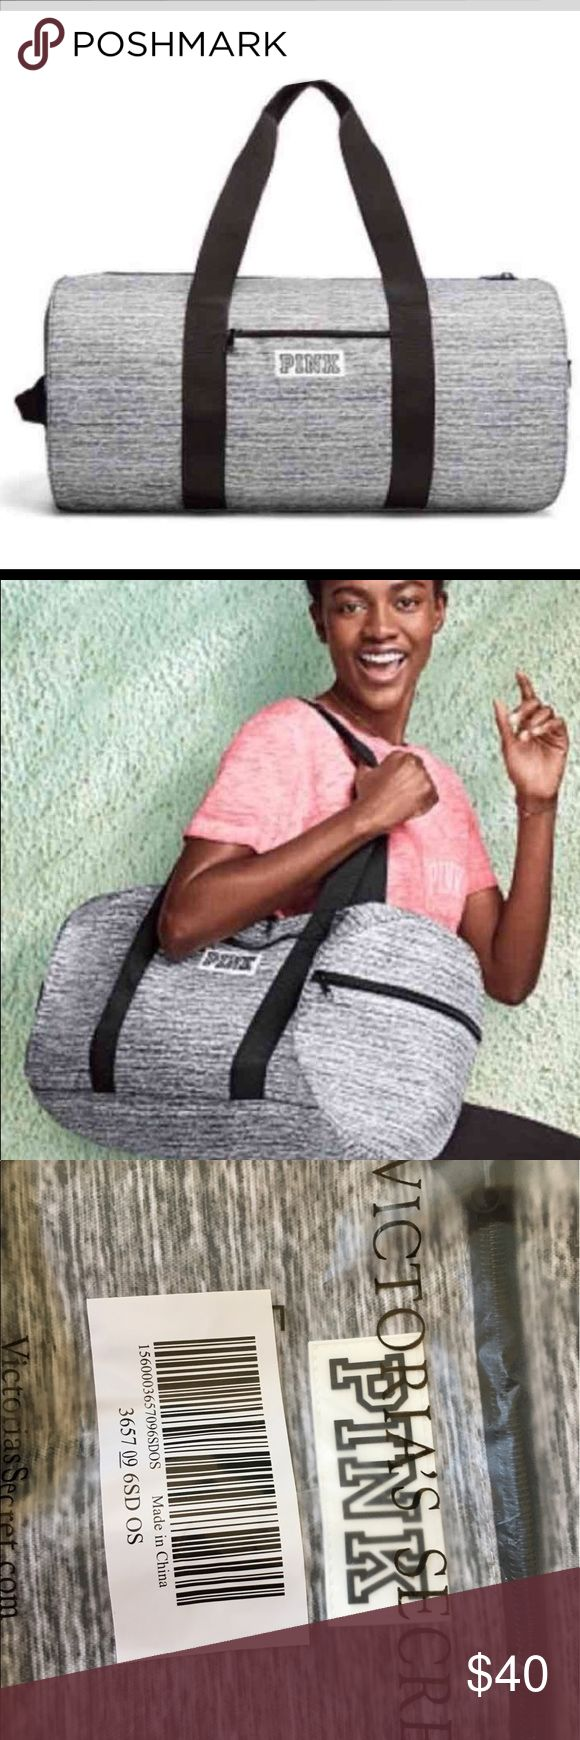 DUFFLE BAG GREY MARL FROM PINK Brand New  Authentic  With NO Tags inside online packaging  Fees Included in price  Look at pictures please  Thank you PINK Victoria's Secret Bags Travel Bags